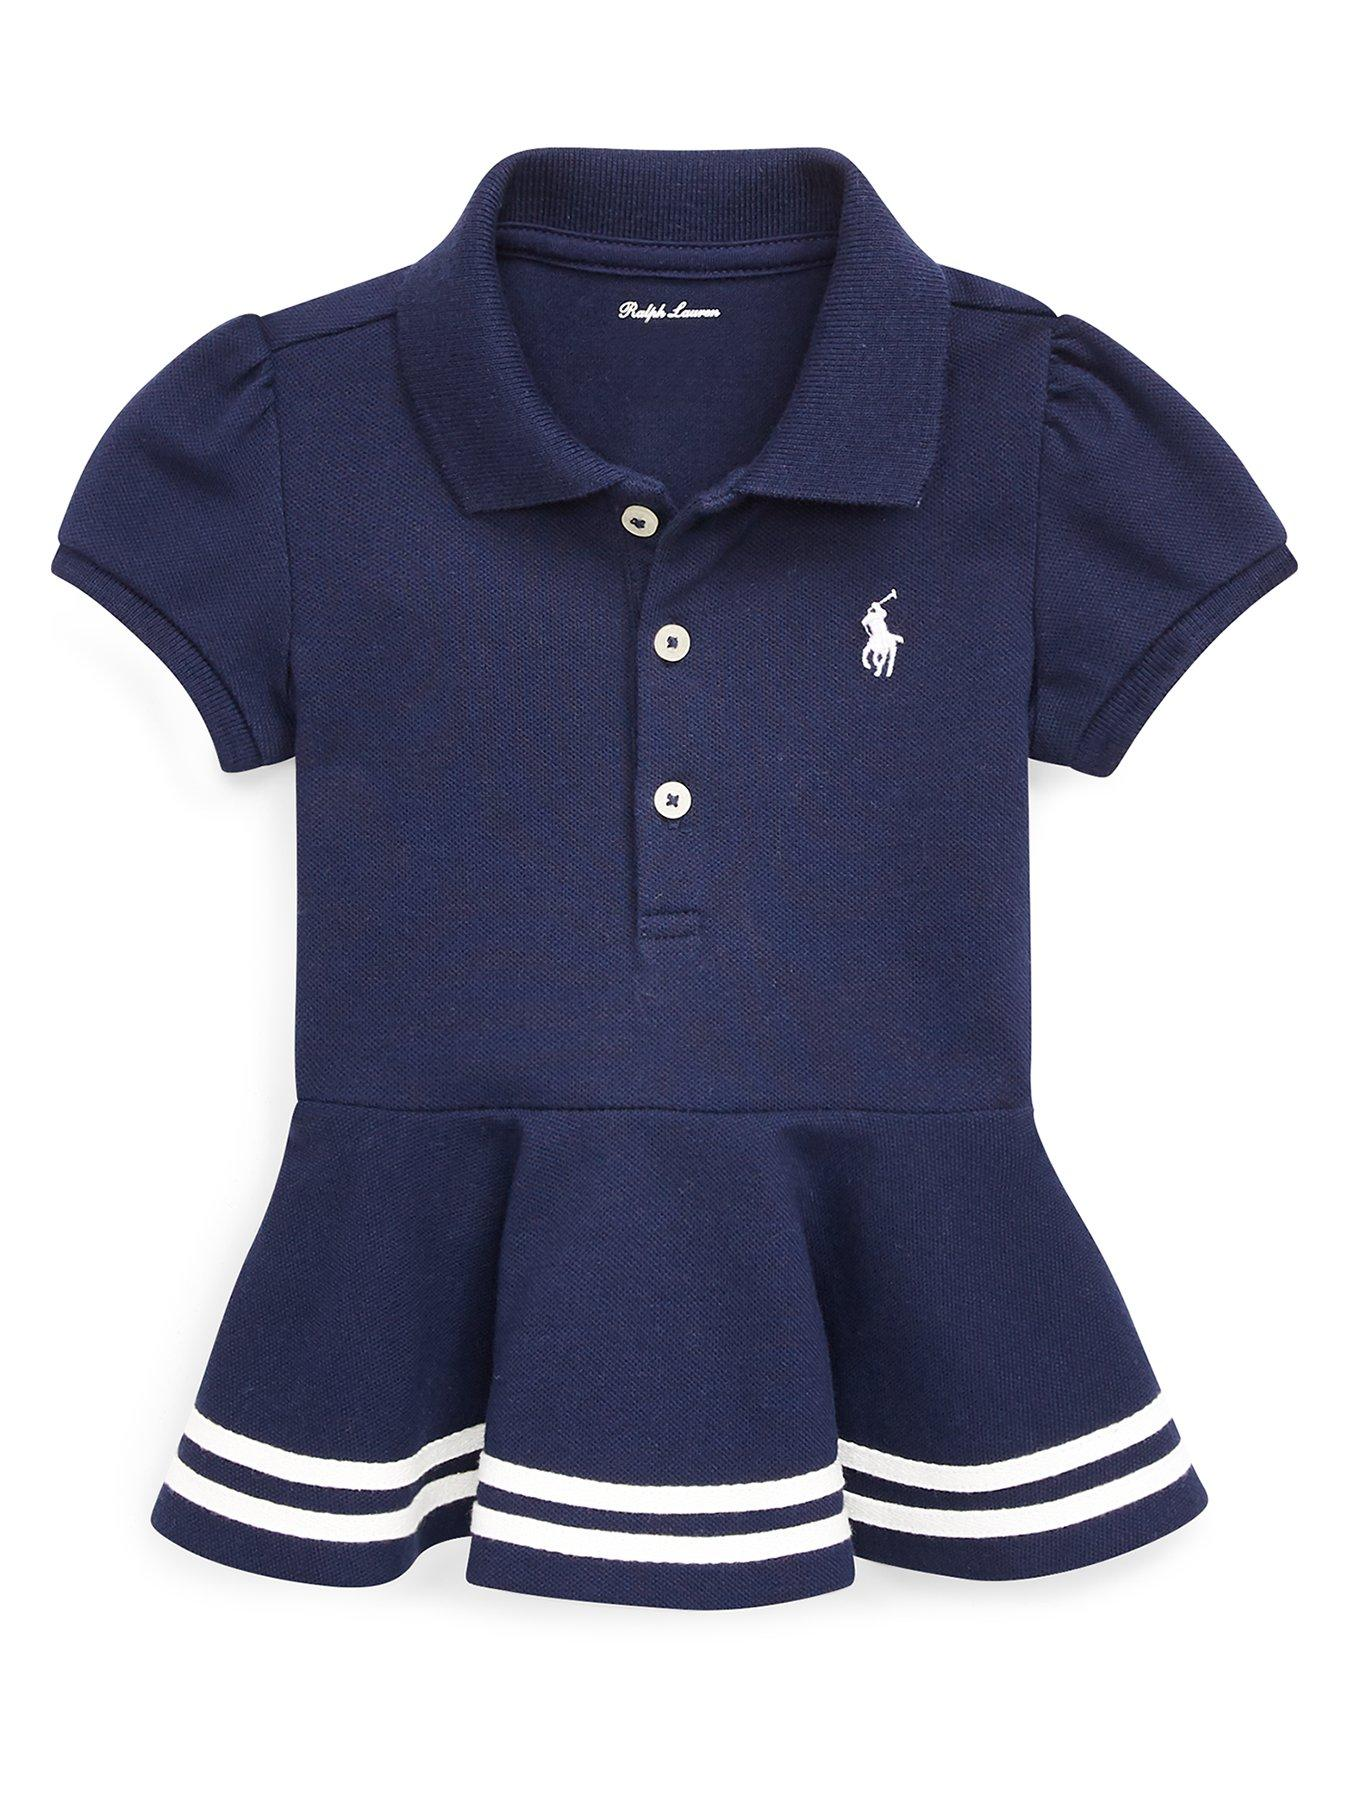 Shirt Baby Peplum Girls Navy Classic Polo oCexdB